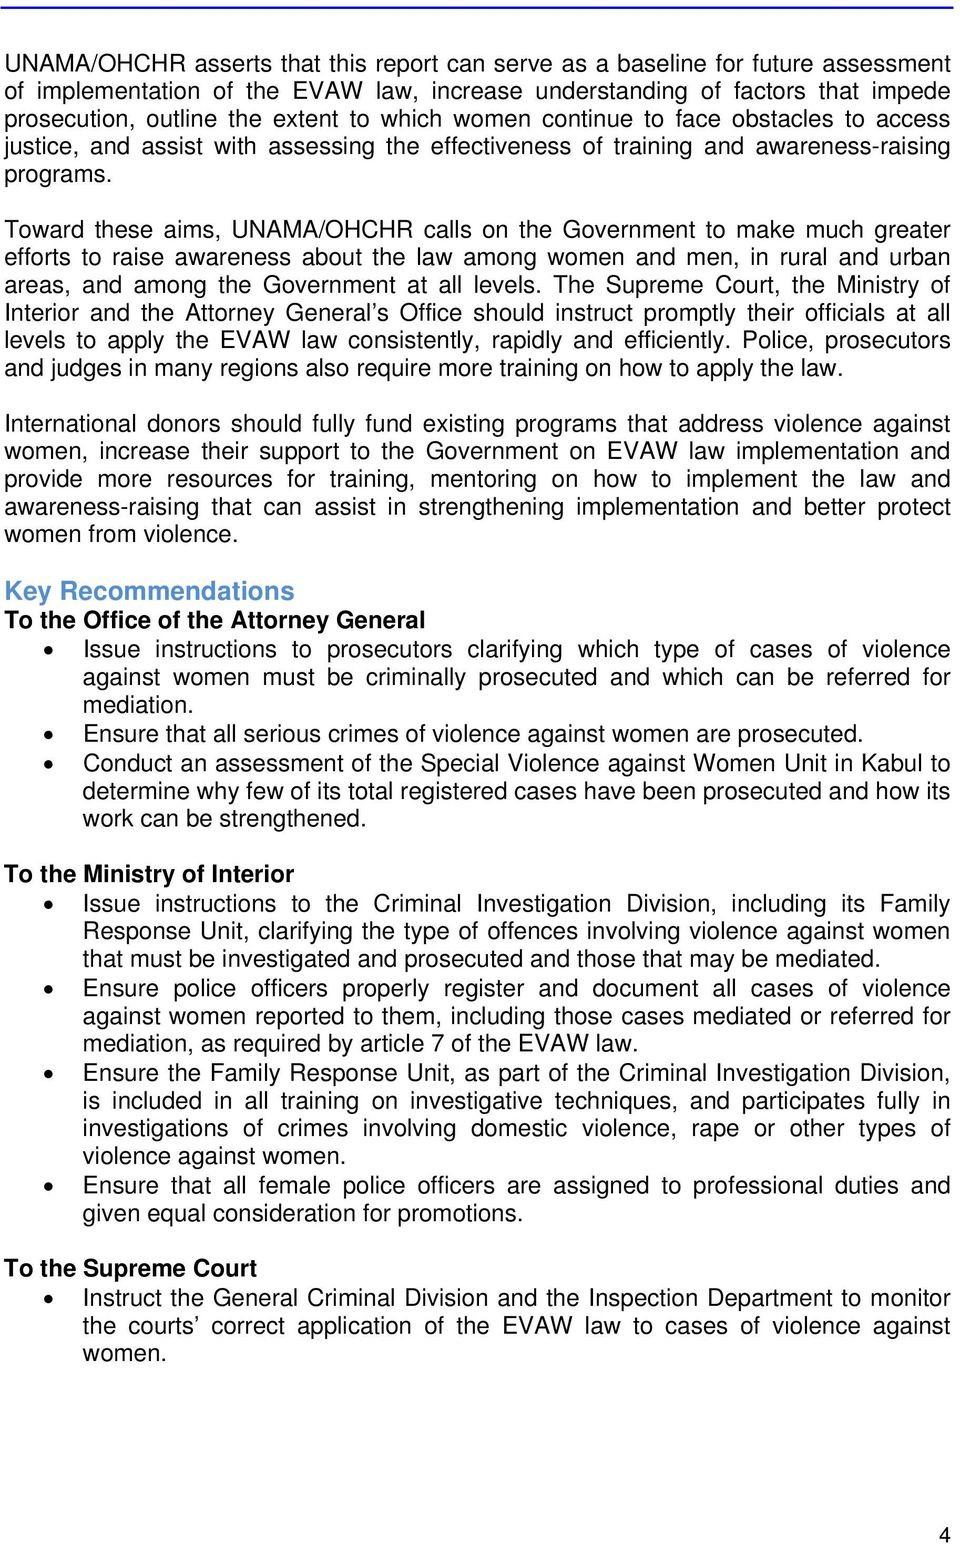 Toward these aims, UNAMA/OHCHR calls on the Government to make much greater efforts to raise awareness about the law among women and men, in rural and urban areas, and among the Government at all